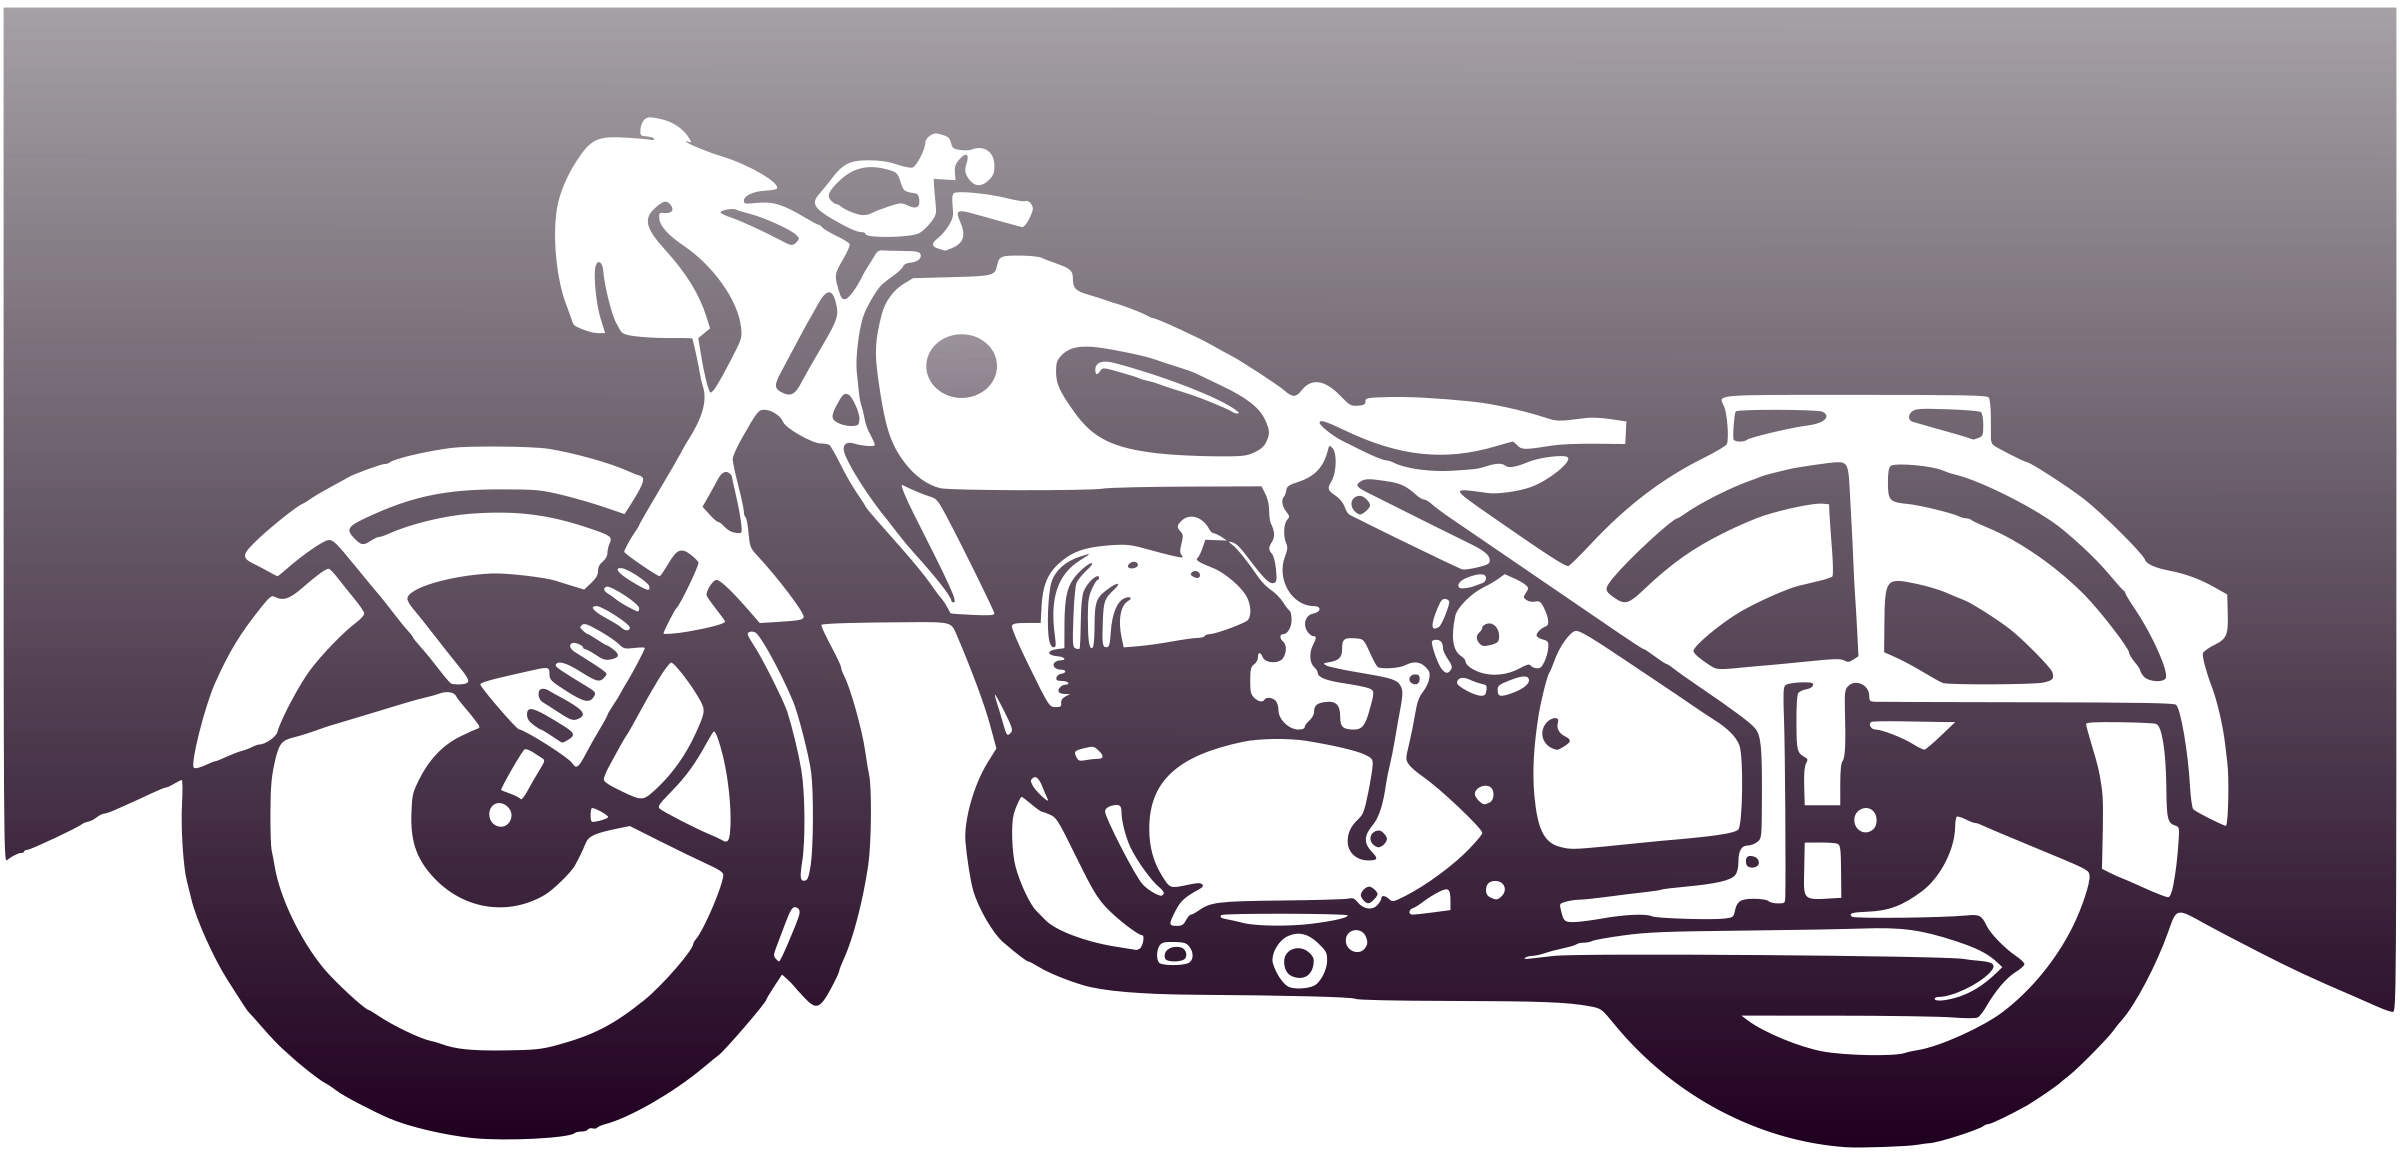 Motorcycle clipart motorbike. Of the ies big